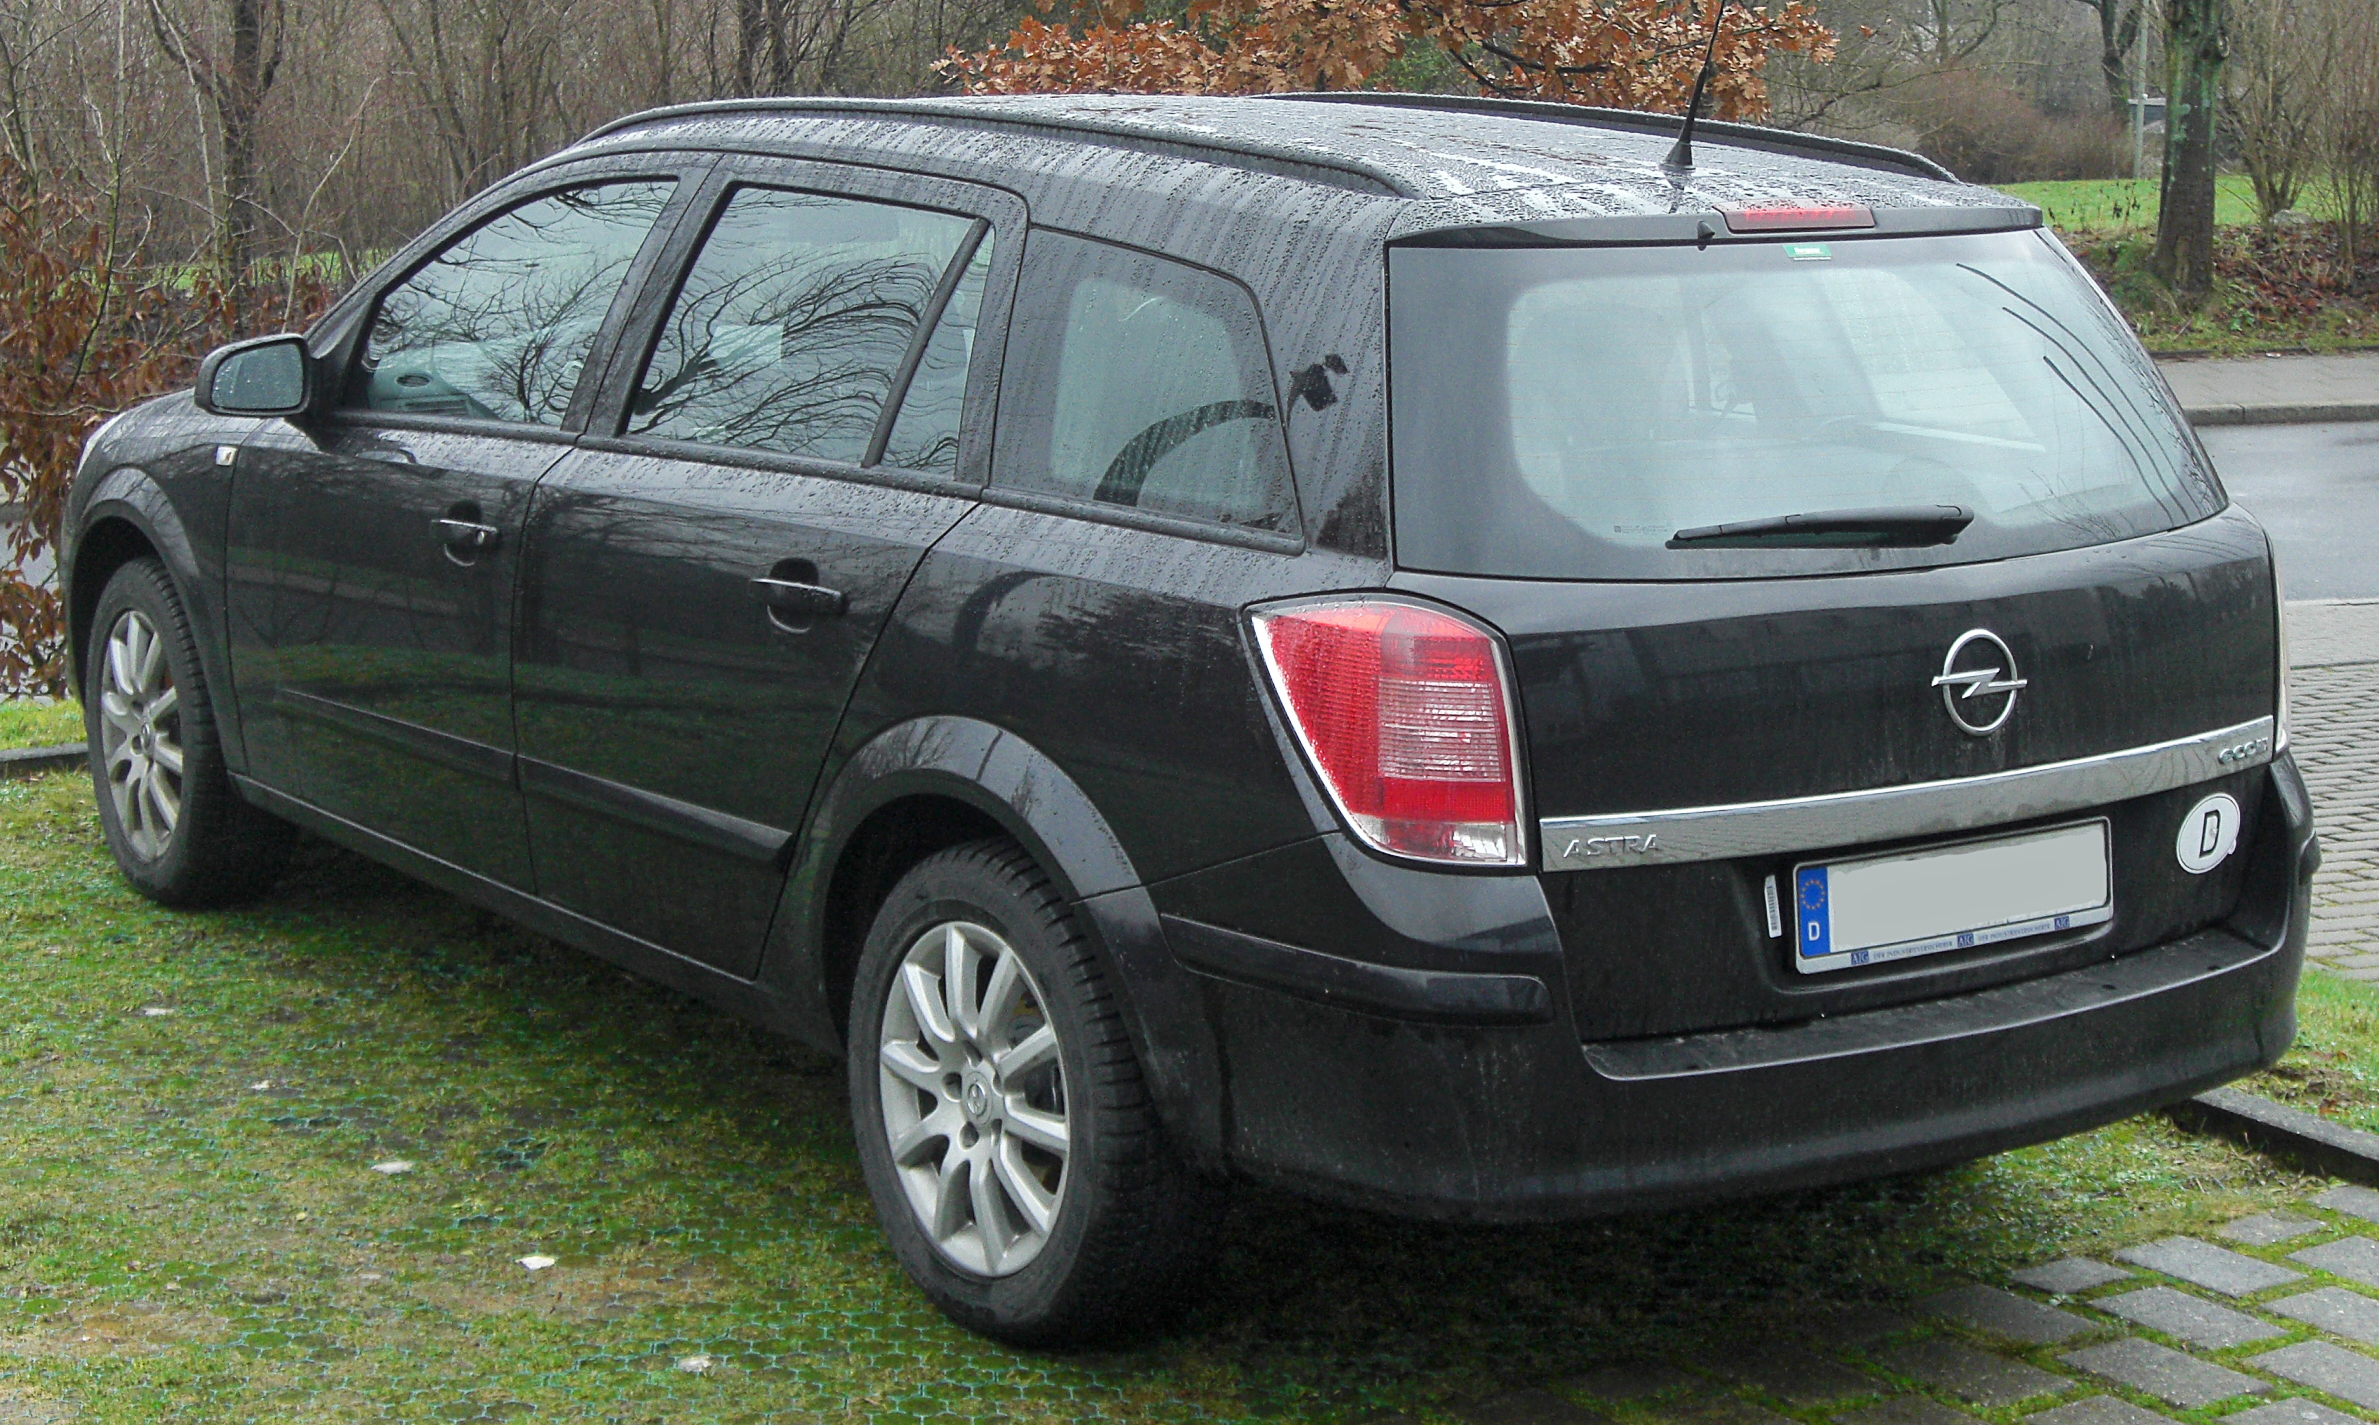 file opel astra h caravan facelift seit 2007 1 7 cdti ecoflex rear mj jpg wikimedia commons. Black Bedroom Furniture Sets. Home Design Ideas